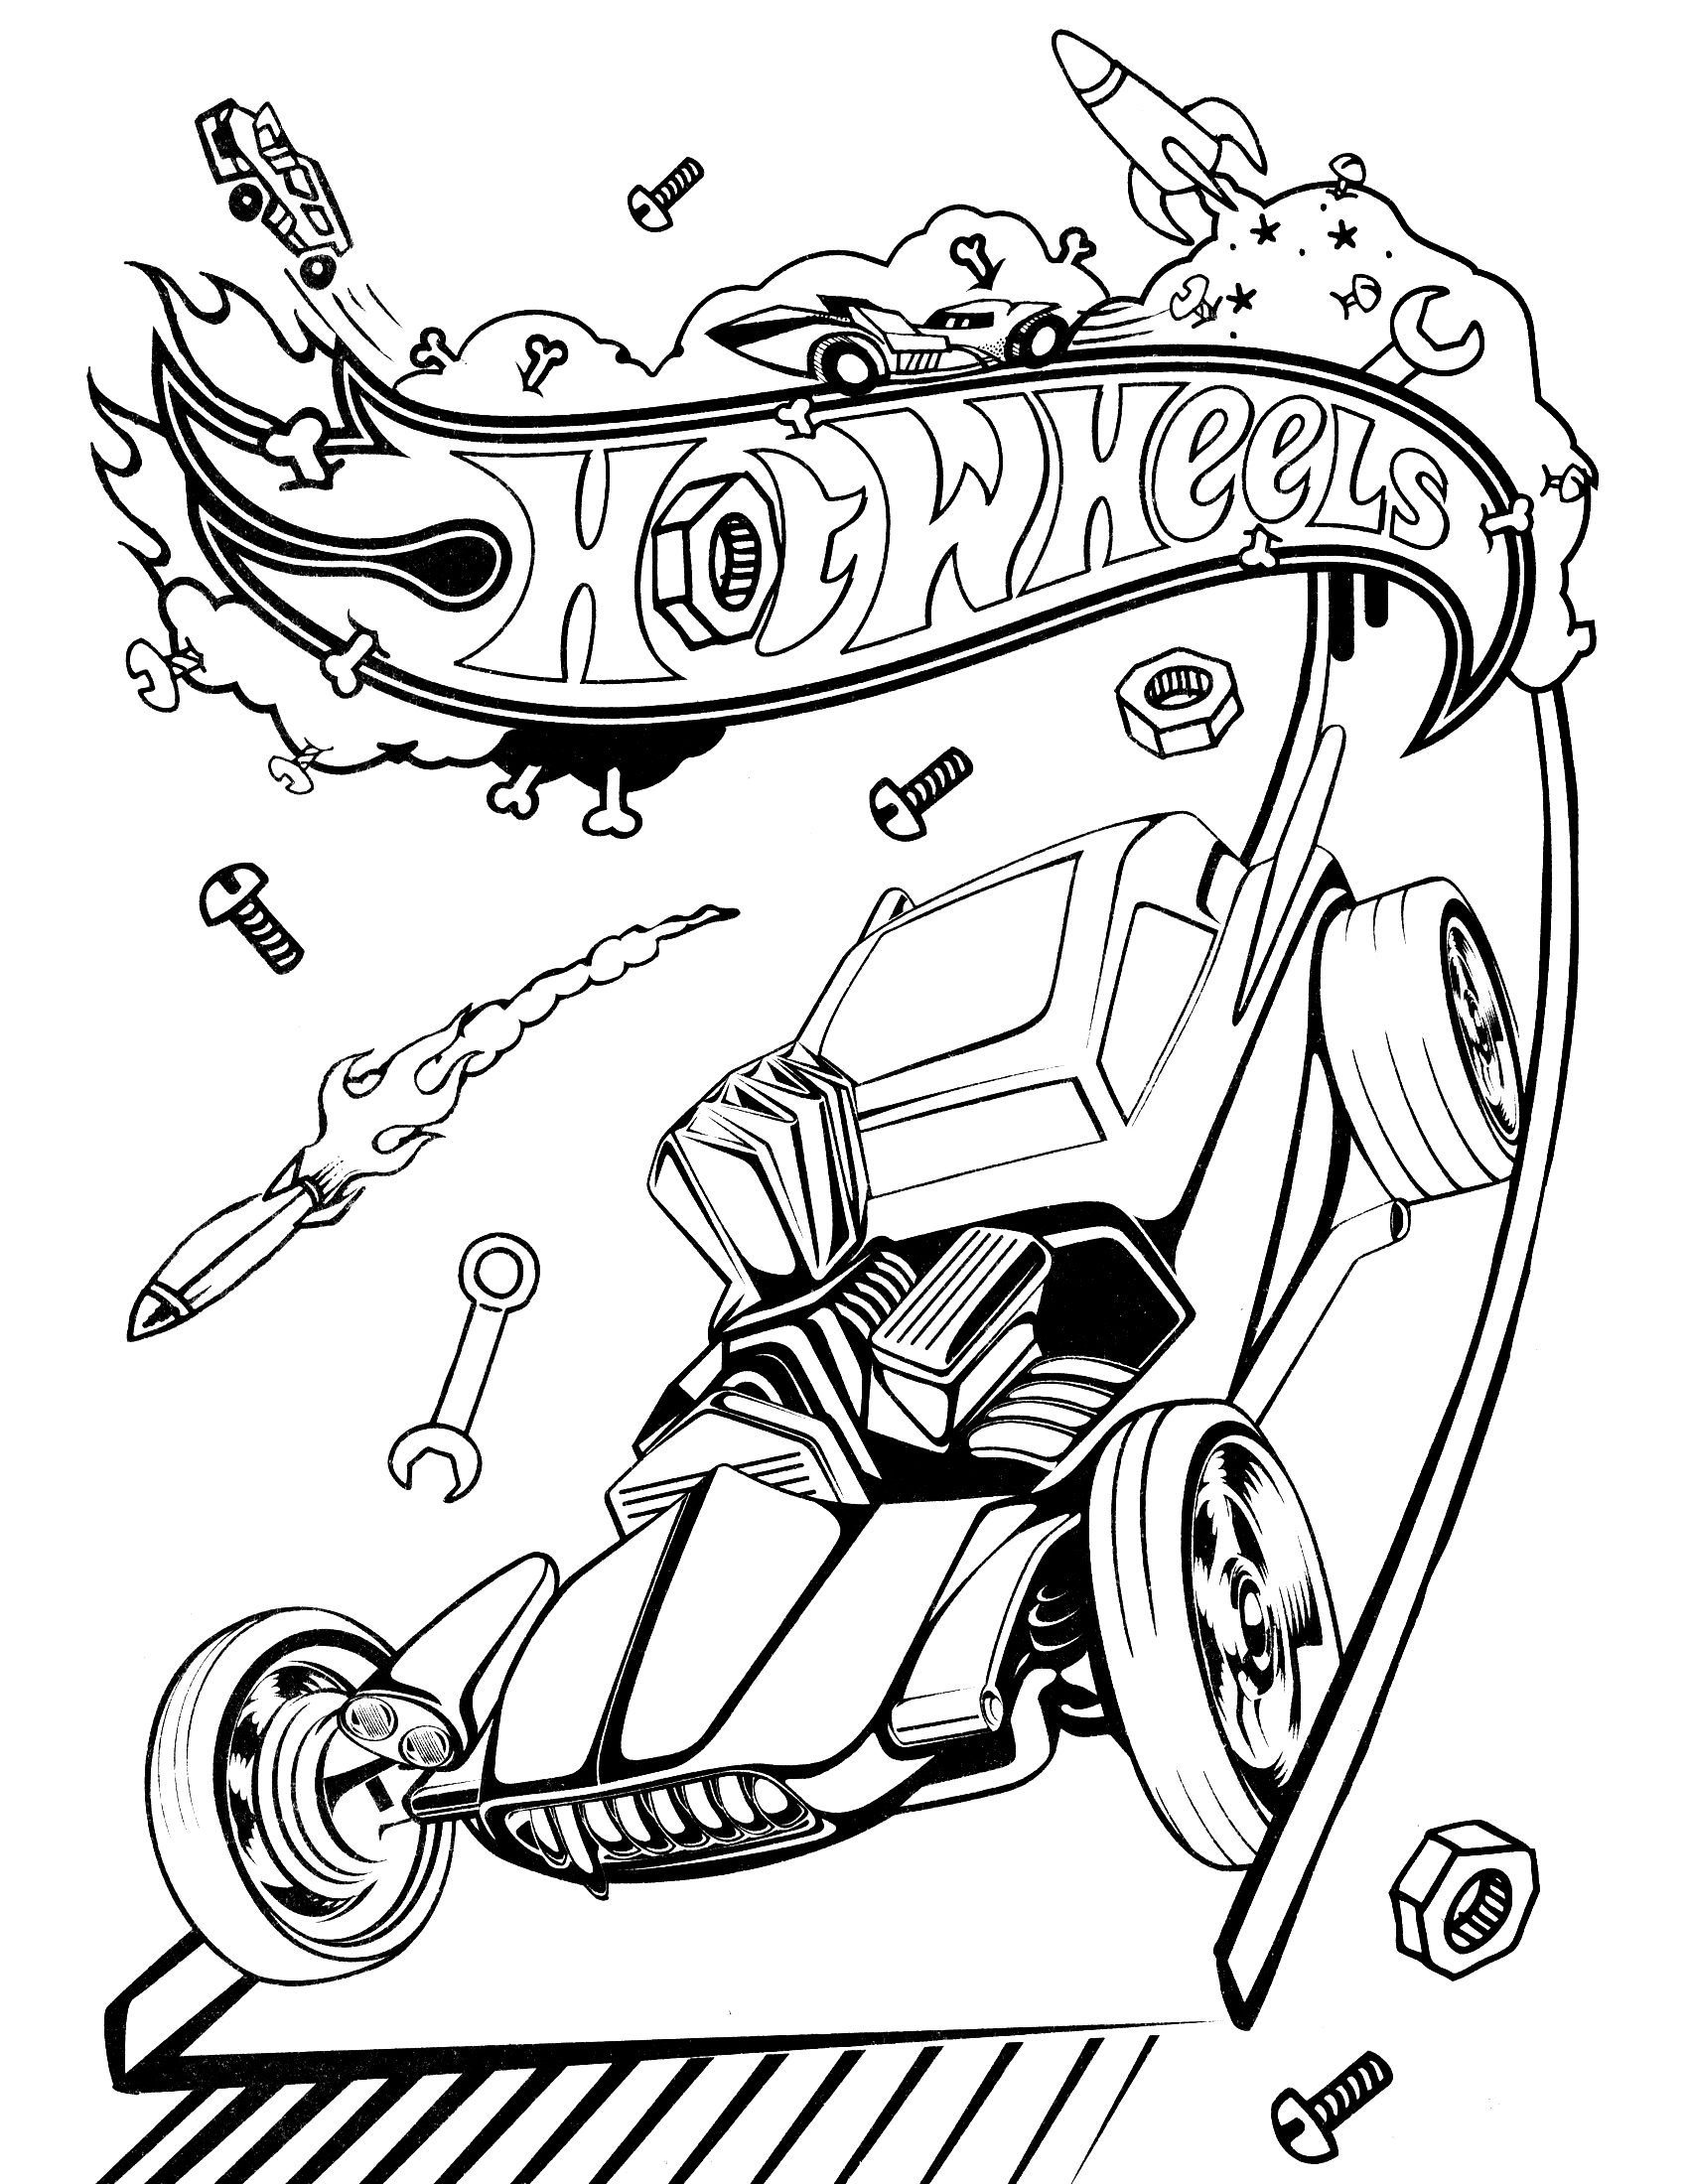 Hot Wheels Coloring Pages Hotrod Coloringstar Collection Of Coloring Books and Pages Simple Hot Rod Coloring Pages Pinterest Printable